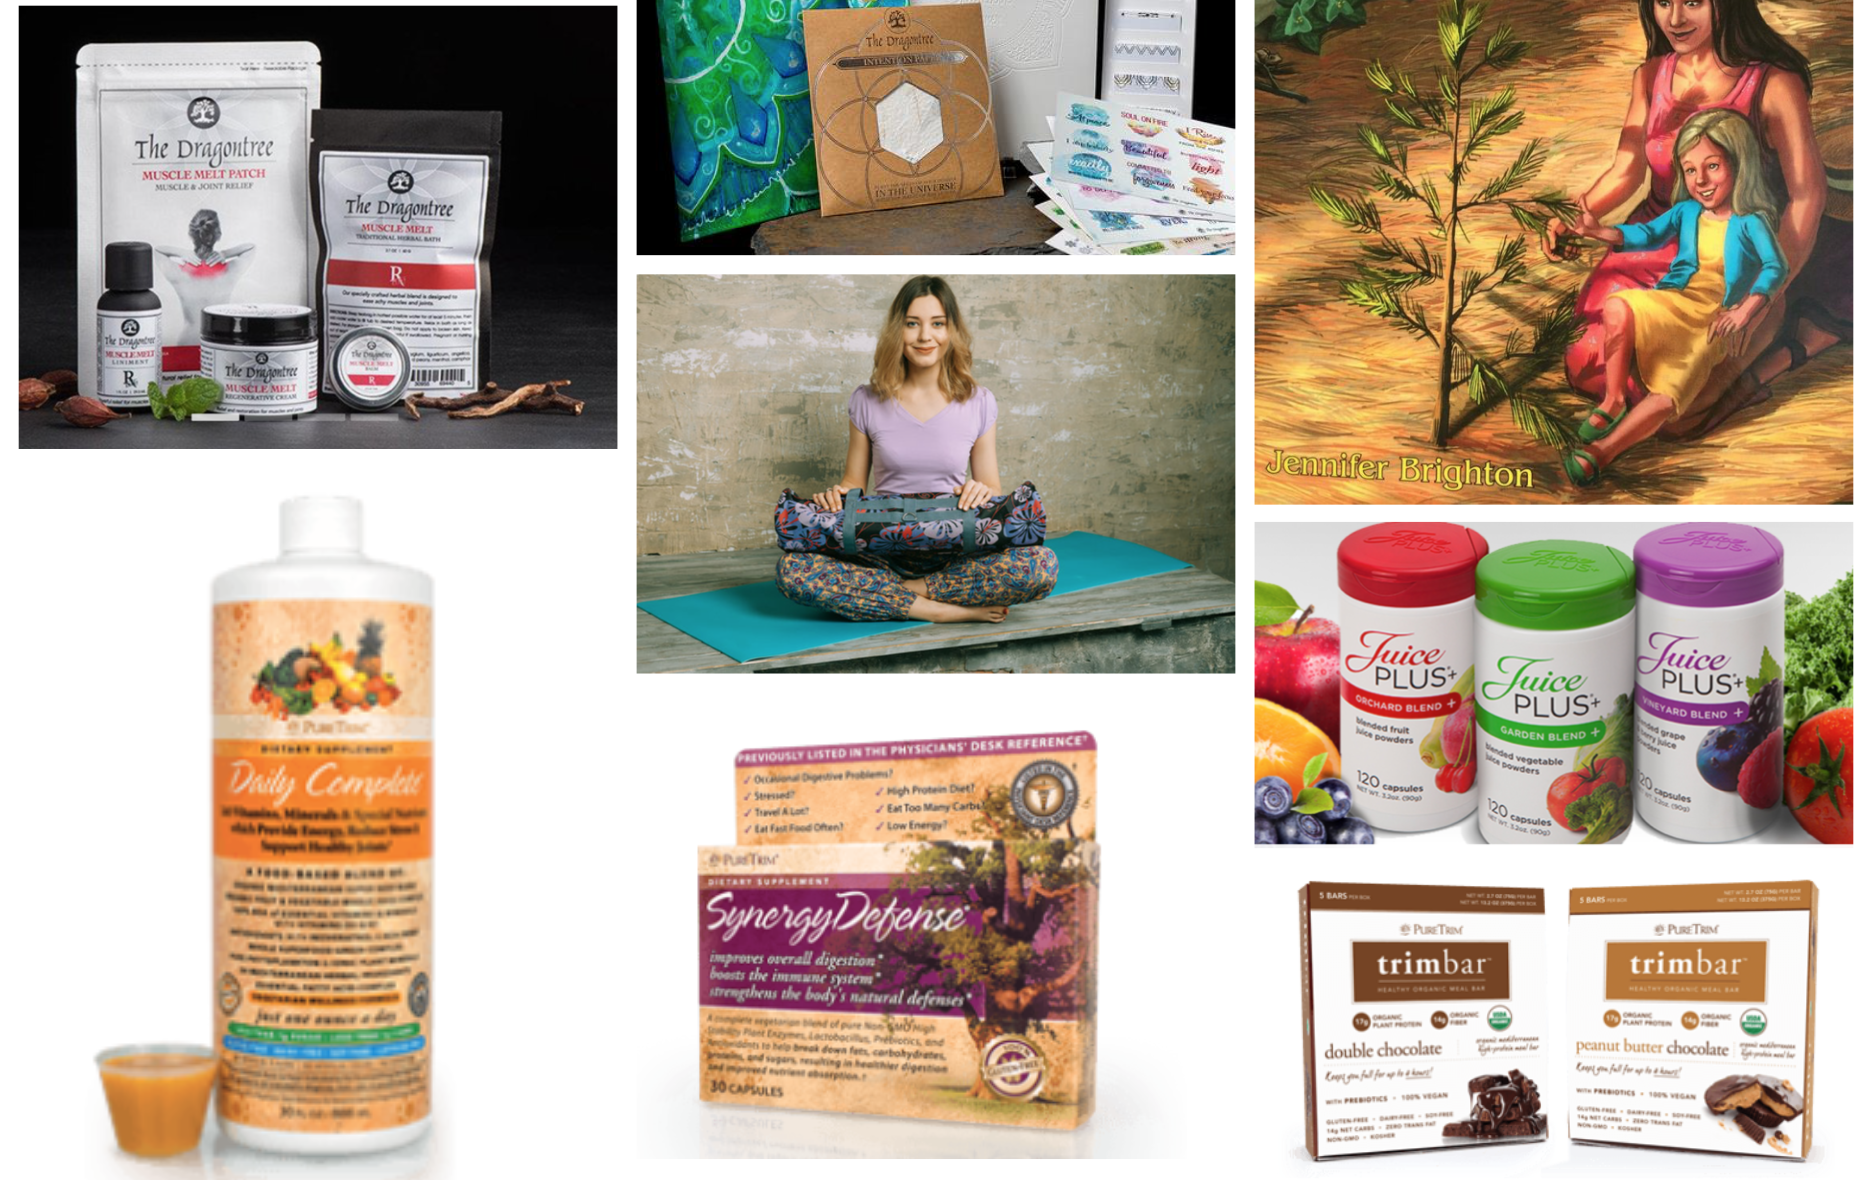 Hand made Beautiful Yoga Mat Bags * Dragon Tree Chinese Medicine Products * PureTrim Products * Juice Plus Products